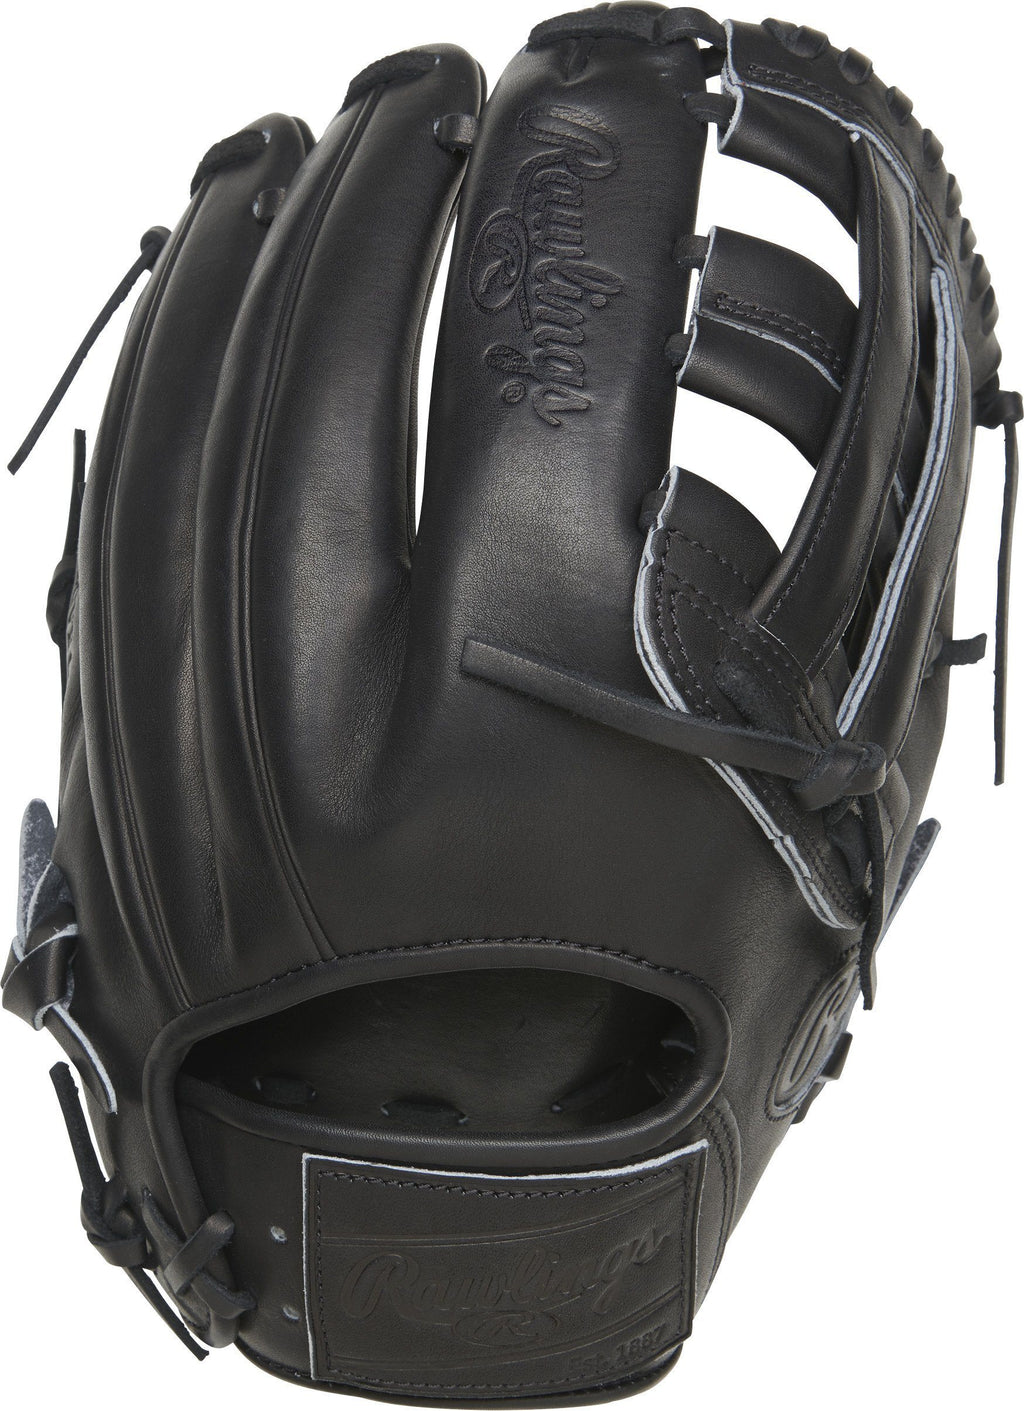 "Rawlings Heart of the Hide 12.25"" Pro Label Carbon Baseball Glove: PROKB17-6B"